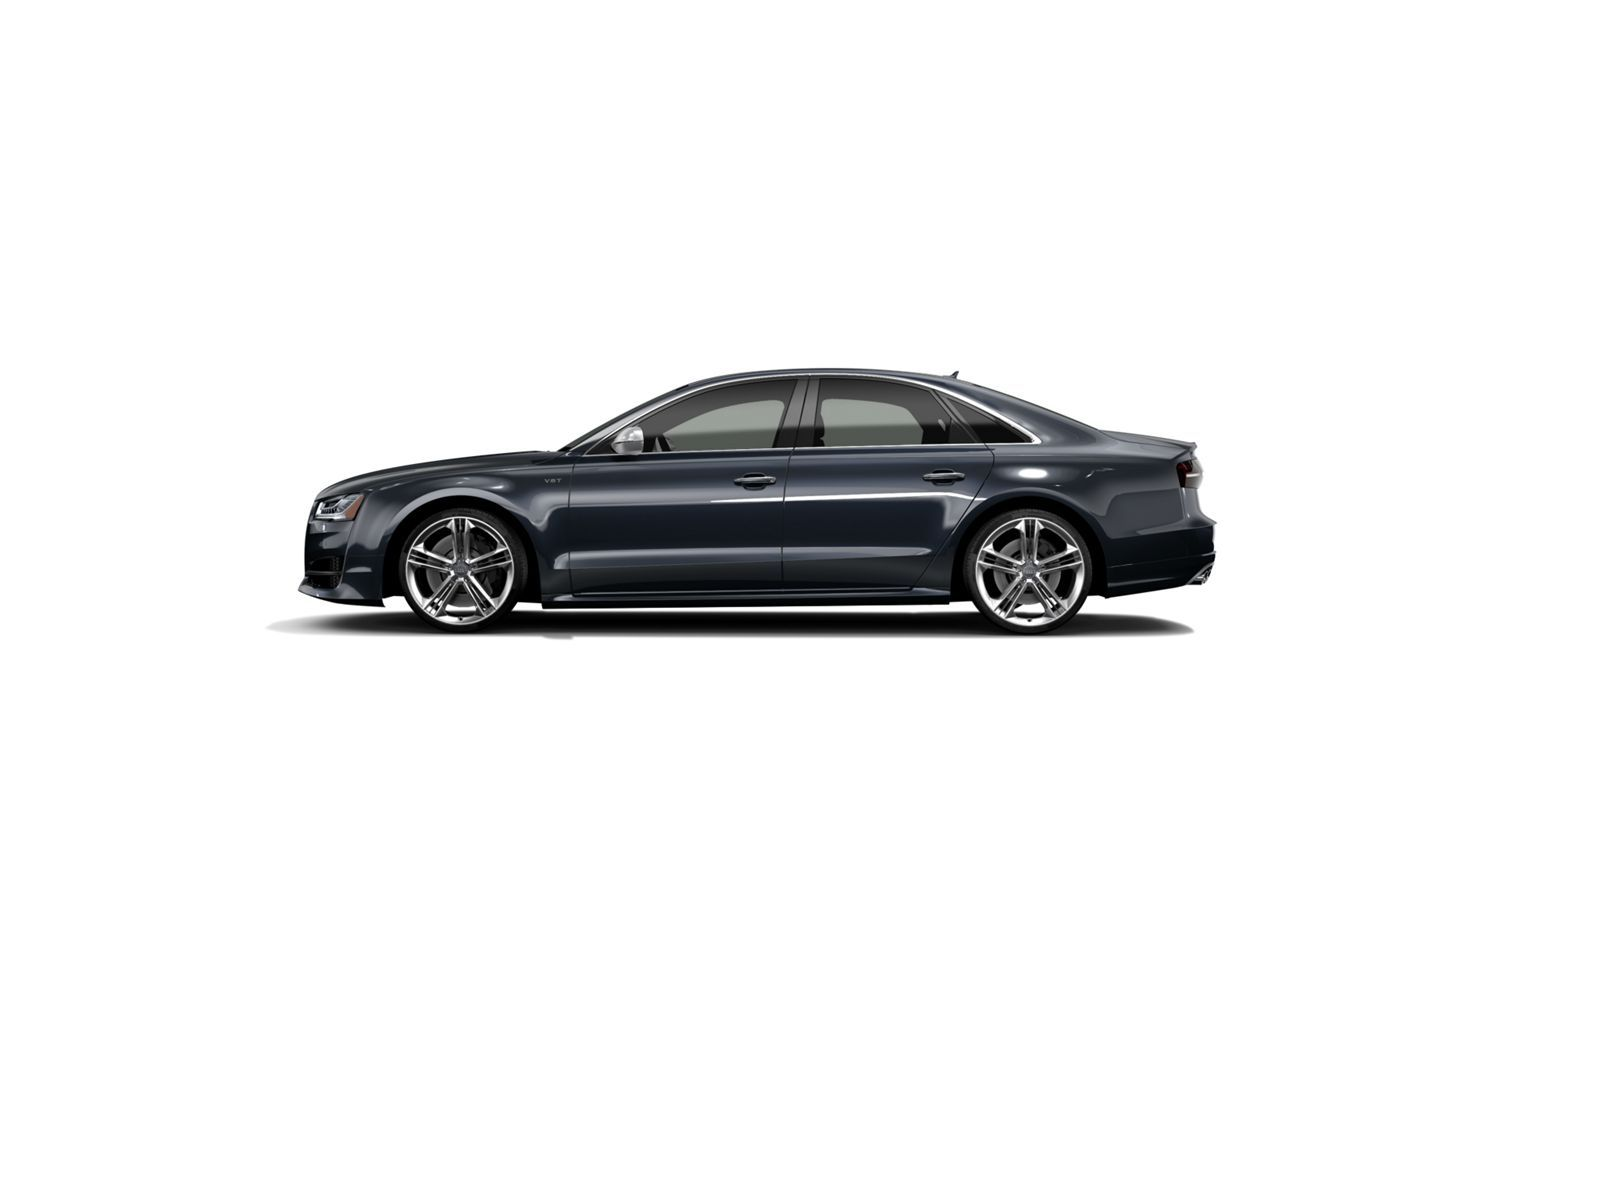 Audi Build Your Own >> Build Your Own Audi S8 Car Configurator Audi Usa Cars